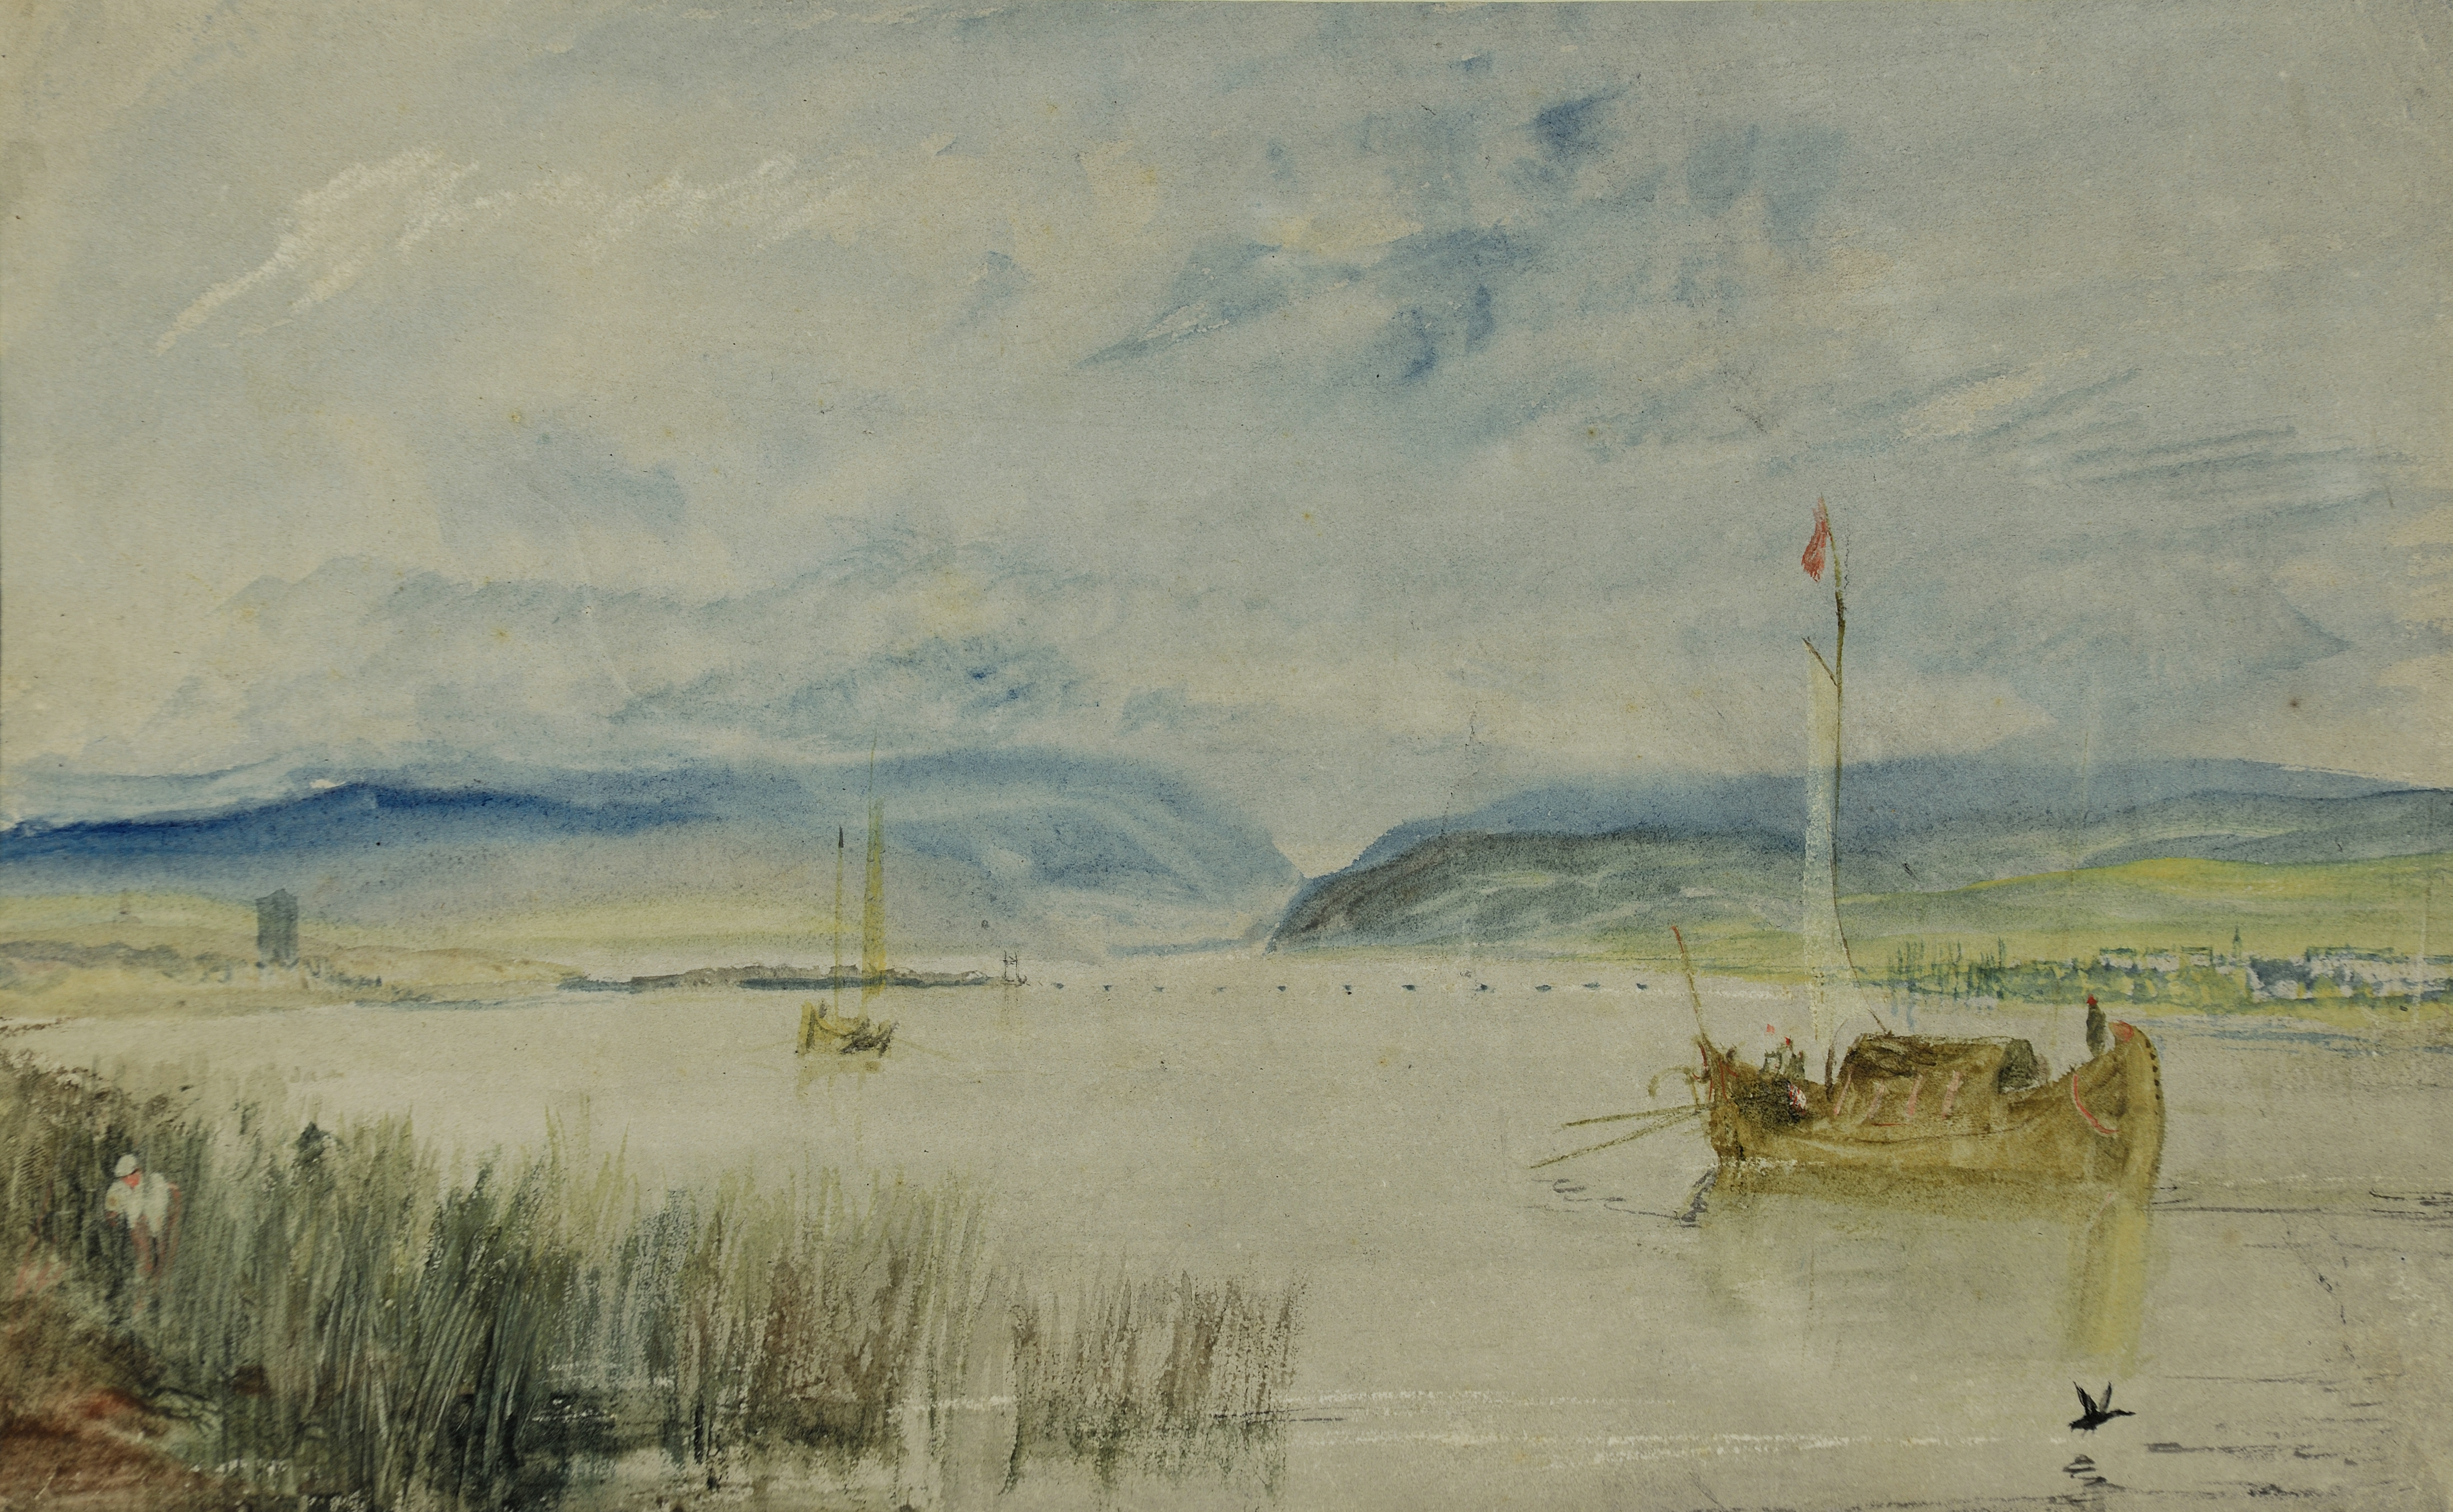 JMW Turner, Neuwied and Weissenthurm on river Rhine 1817